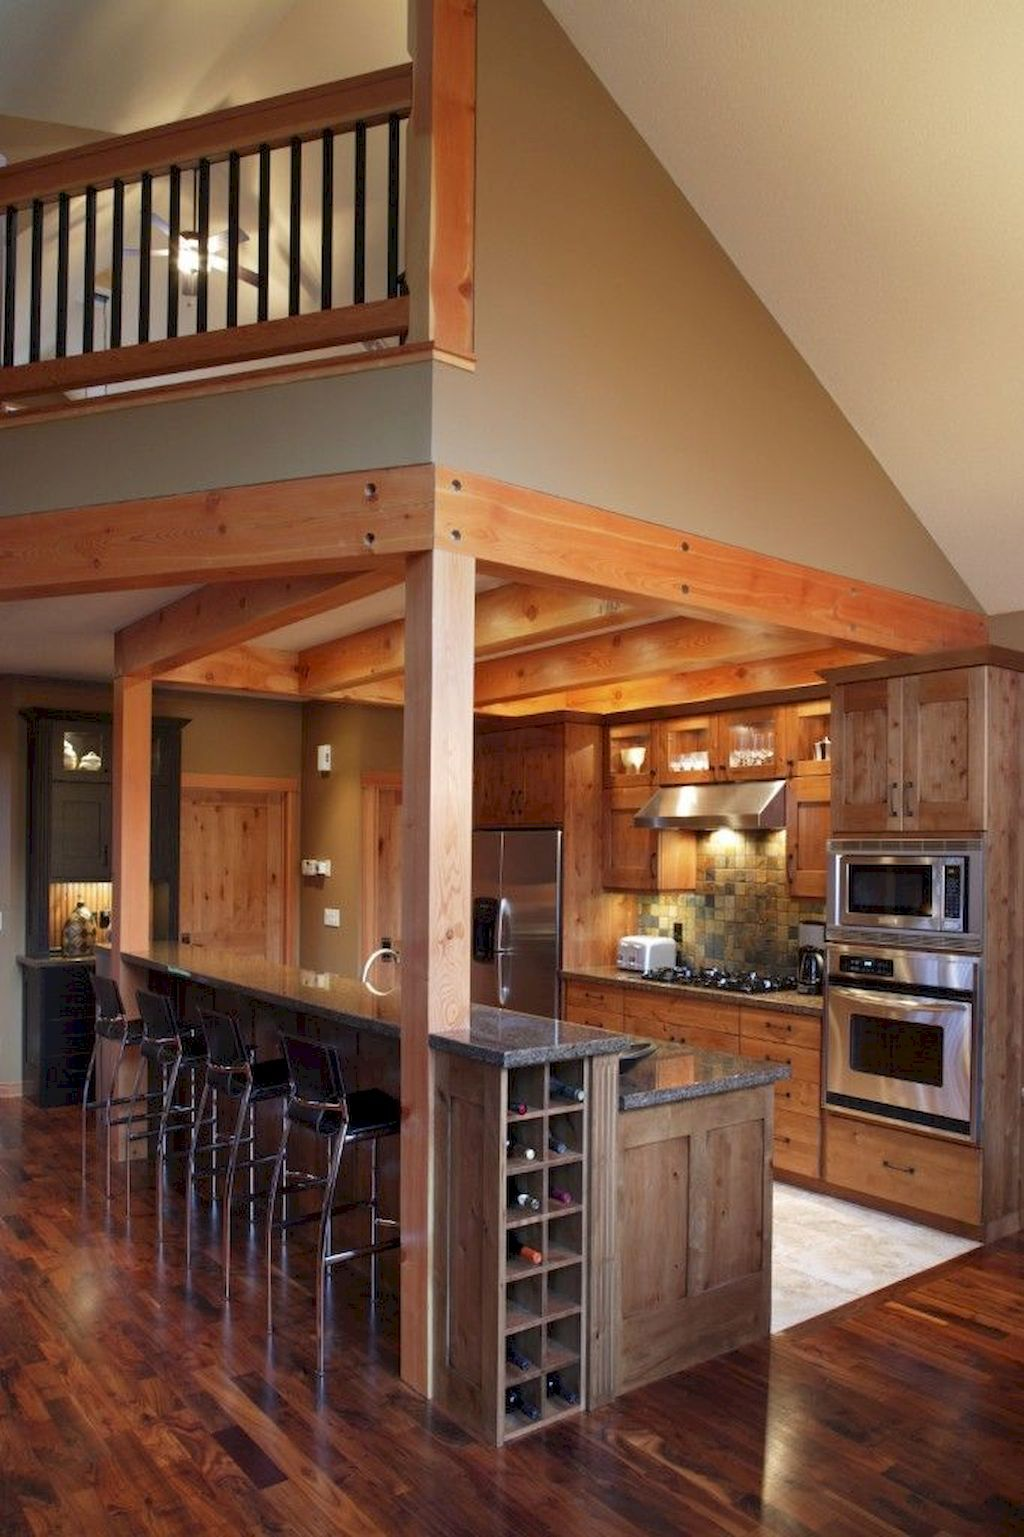 65 Gorgeous Small Kitchen Remodel Ideas  Kitchens Cabin And House Interesting Small Kitchen Remodel Ideas Decorating Inspiration